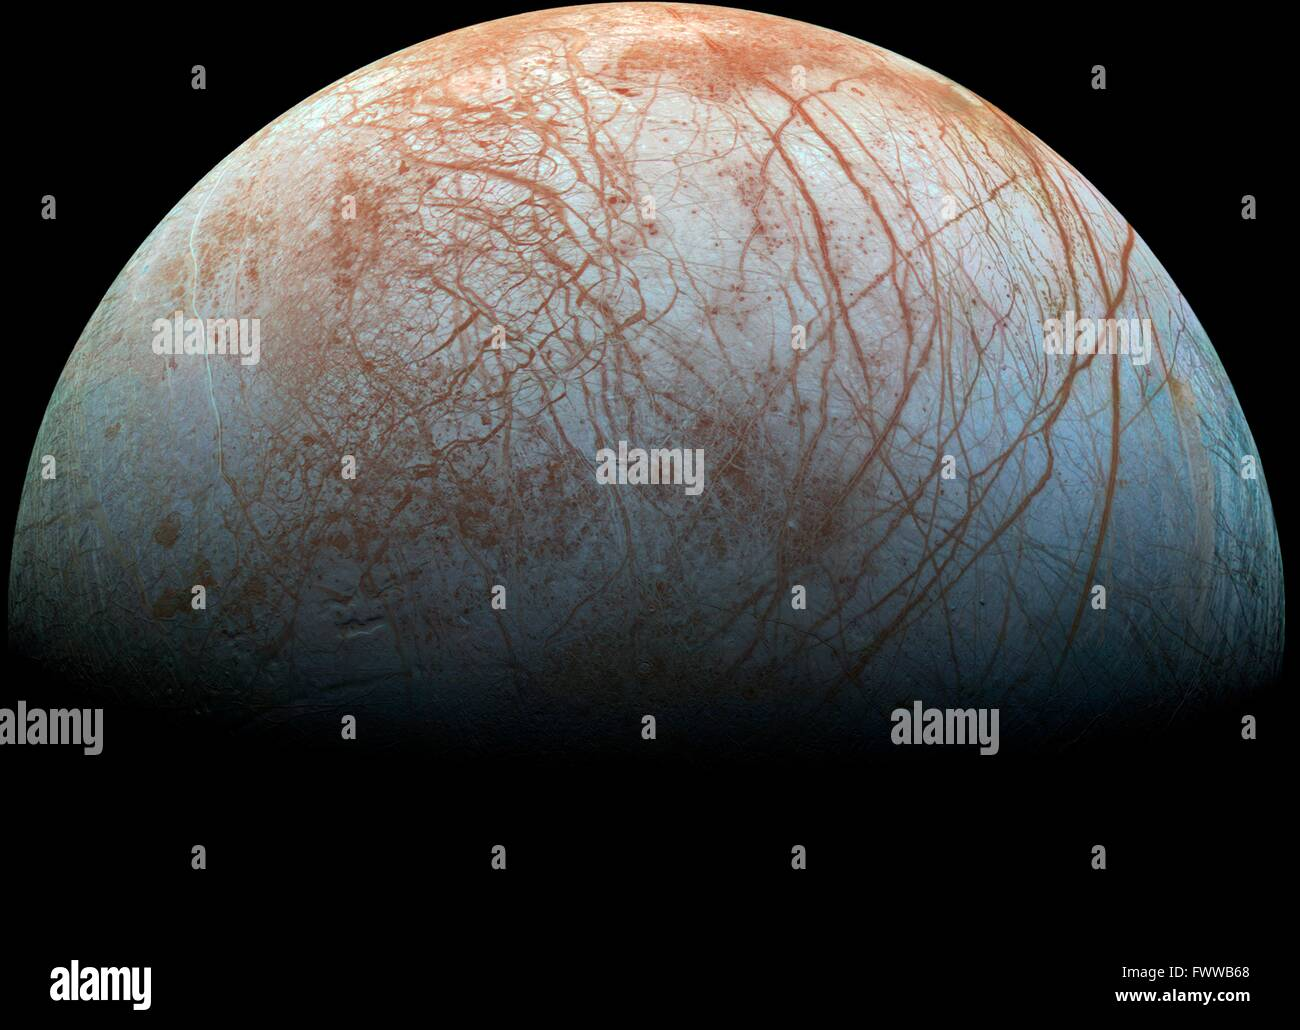 Jupiter's icy moon Europa looms large in this newly-reprocessed color view made from images taken by NASA's - Stock Image